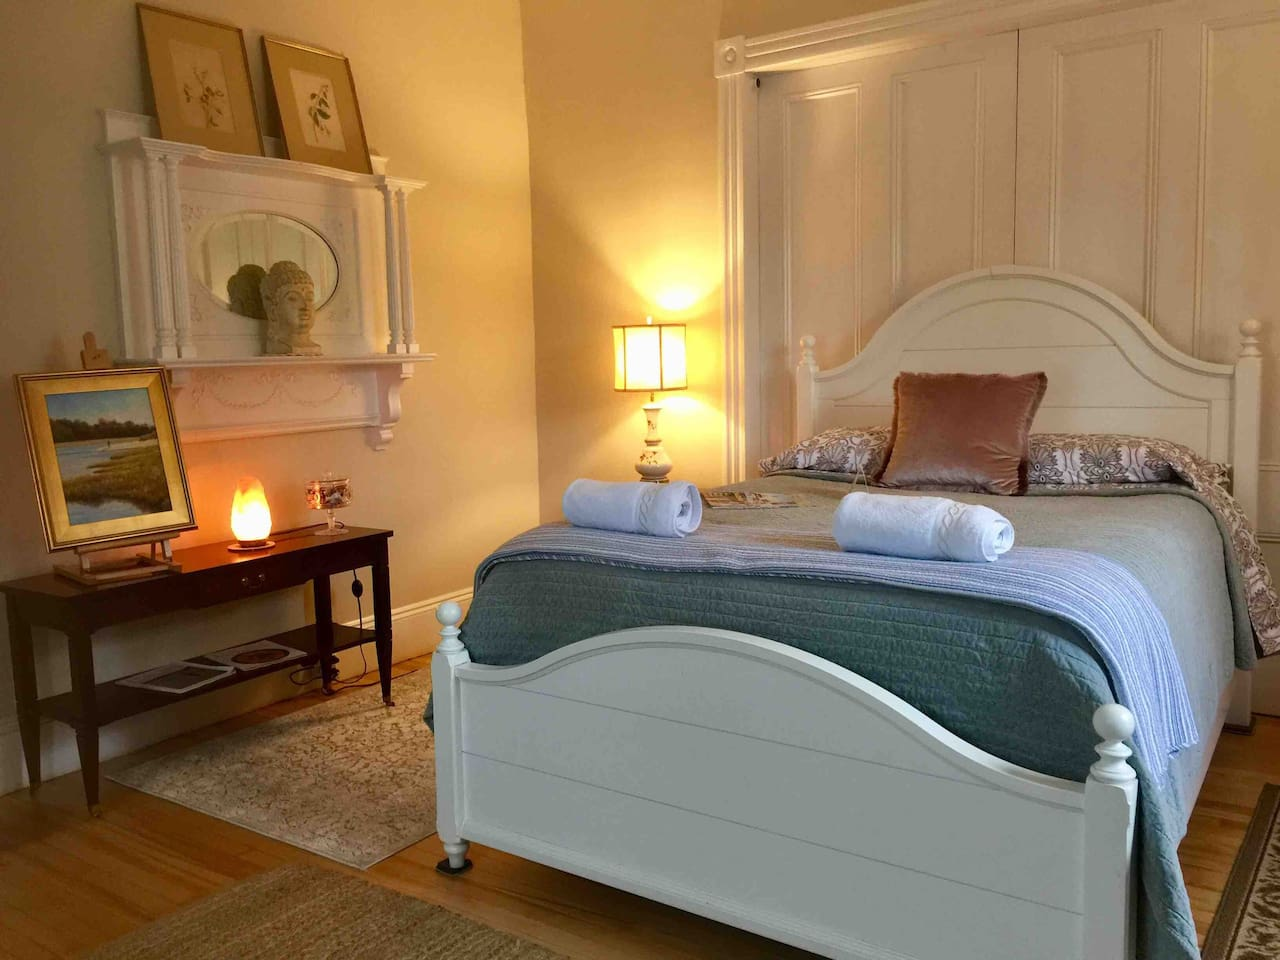 The Monet room has a queen size bed, antique furniture and original local paintings